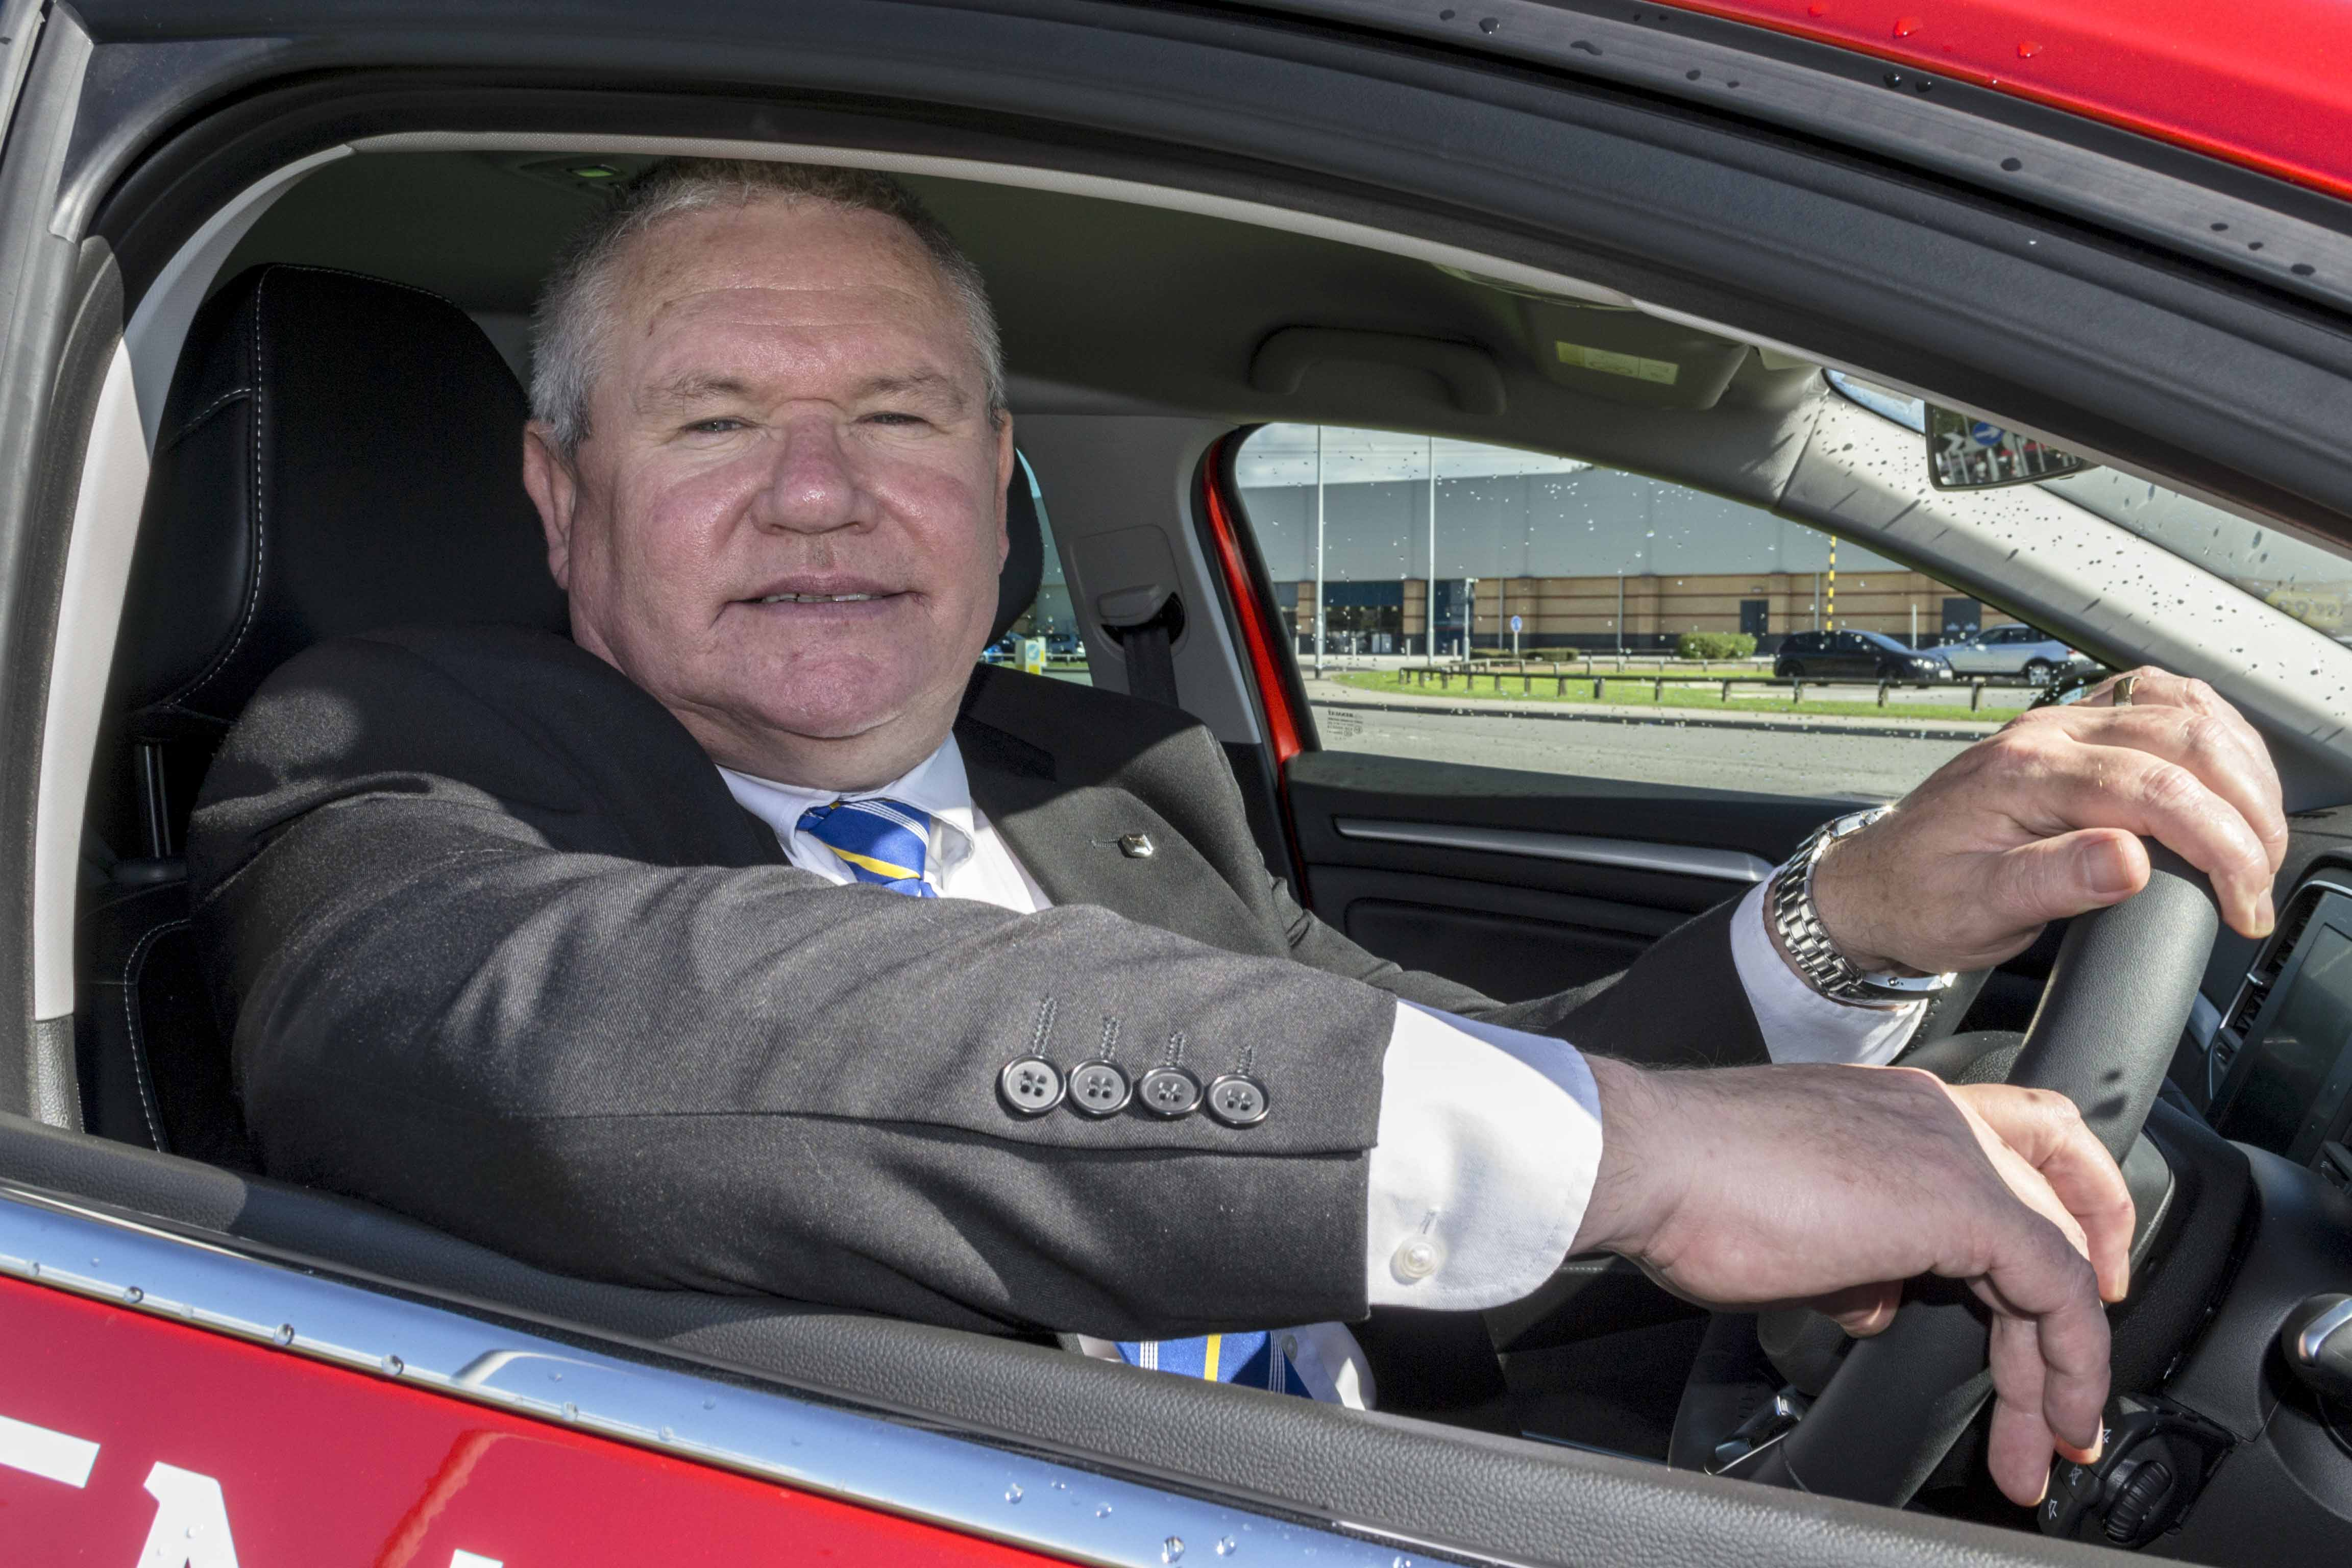 Danny O'Donovan Business Development Manager at Wessex Garages who has been selected as an Introbiz ambassador.